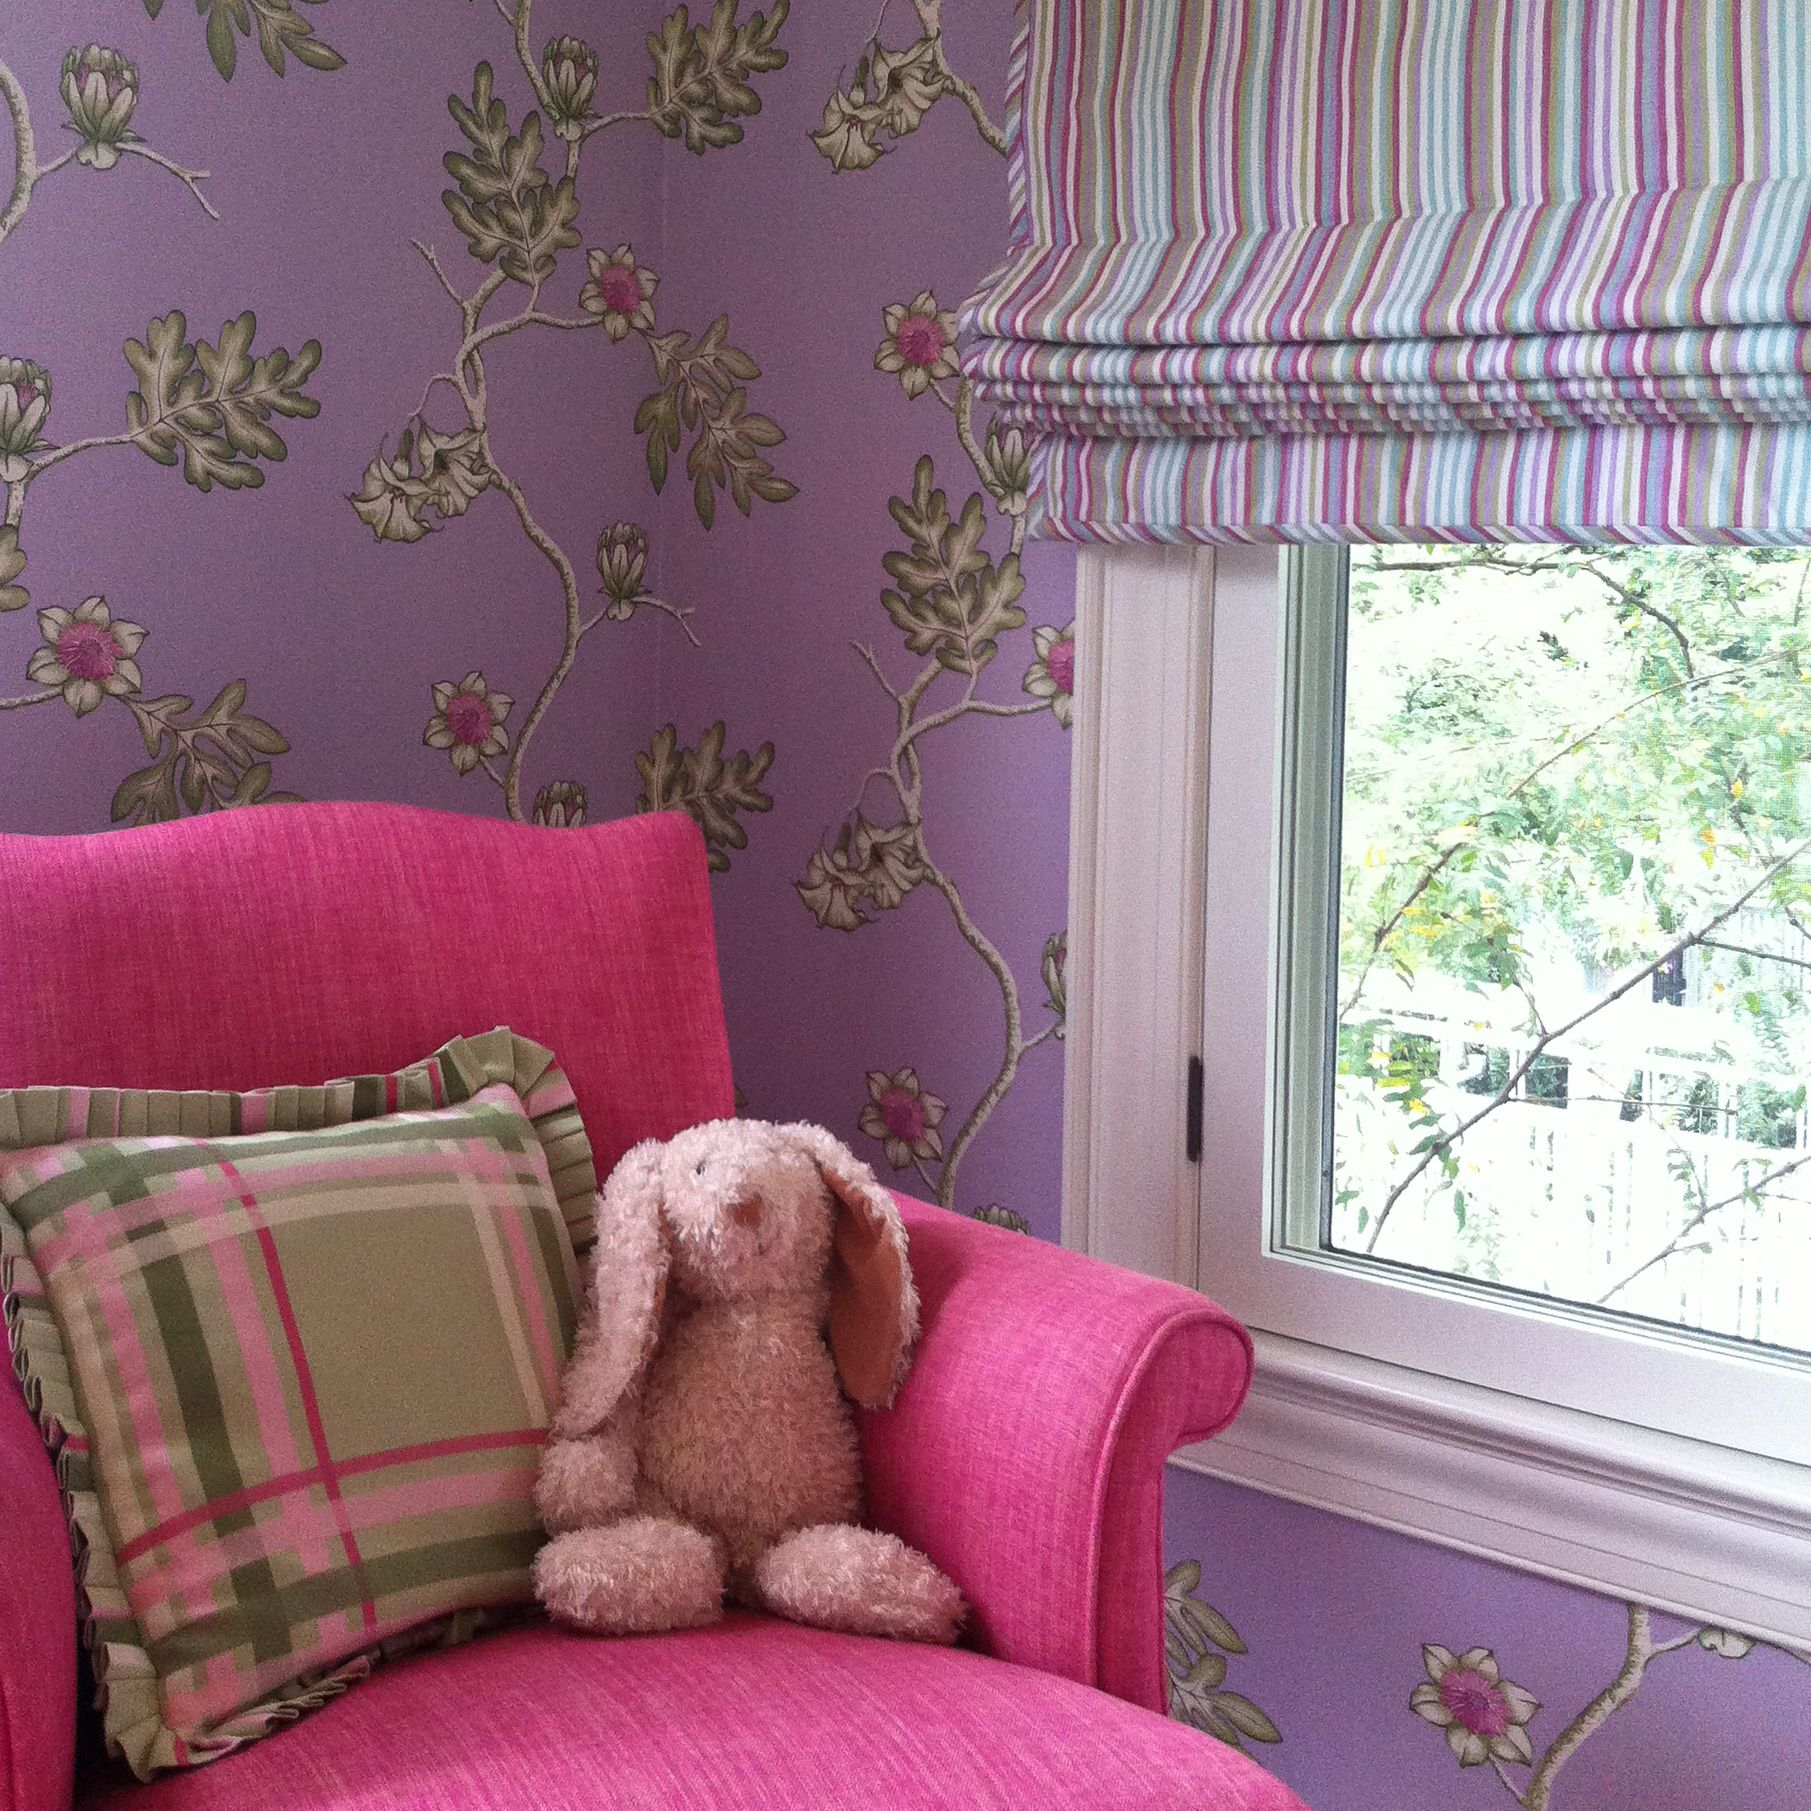 An SBS designed nursery in DC. Featuring #manuelcanovas wallpaper, roman shade fabric by Zoffany, and chair and pillow fabric by Osborne & Little.  www.solisbetancourt.com